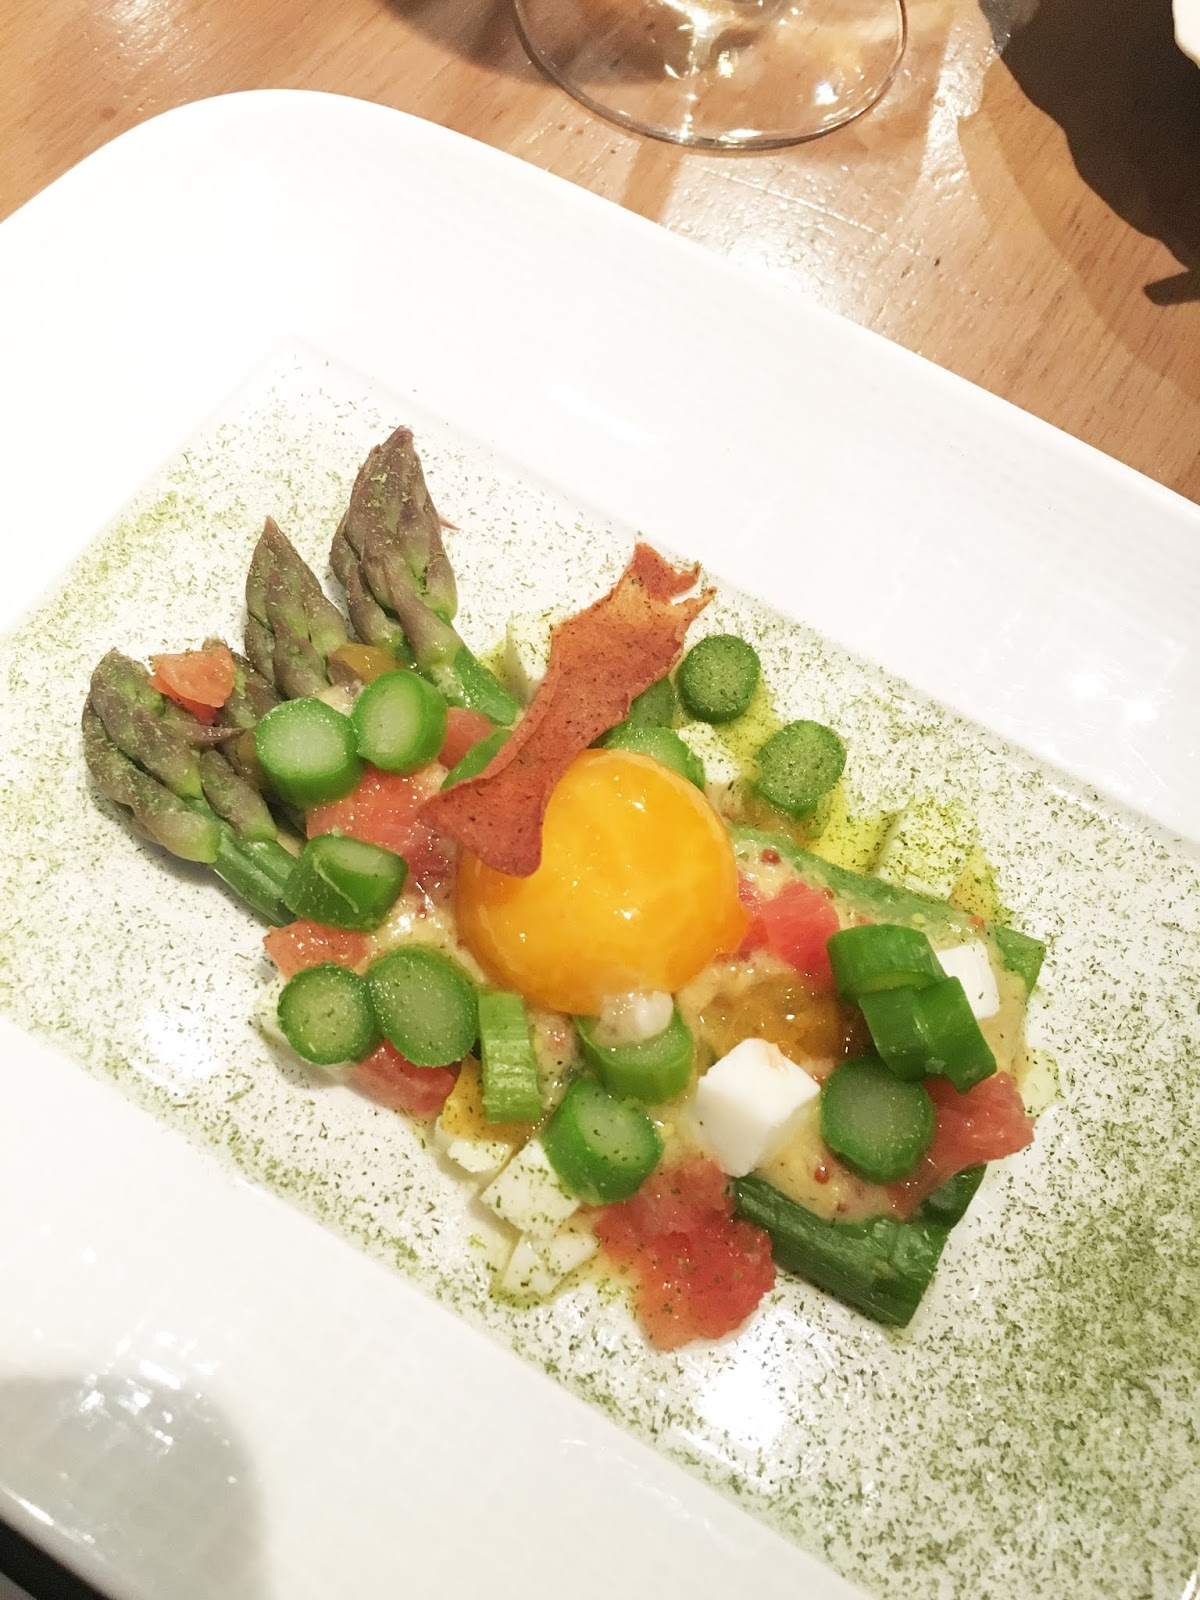 Deconstructed egg dish from L'Epi Dupin